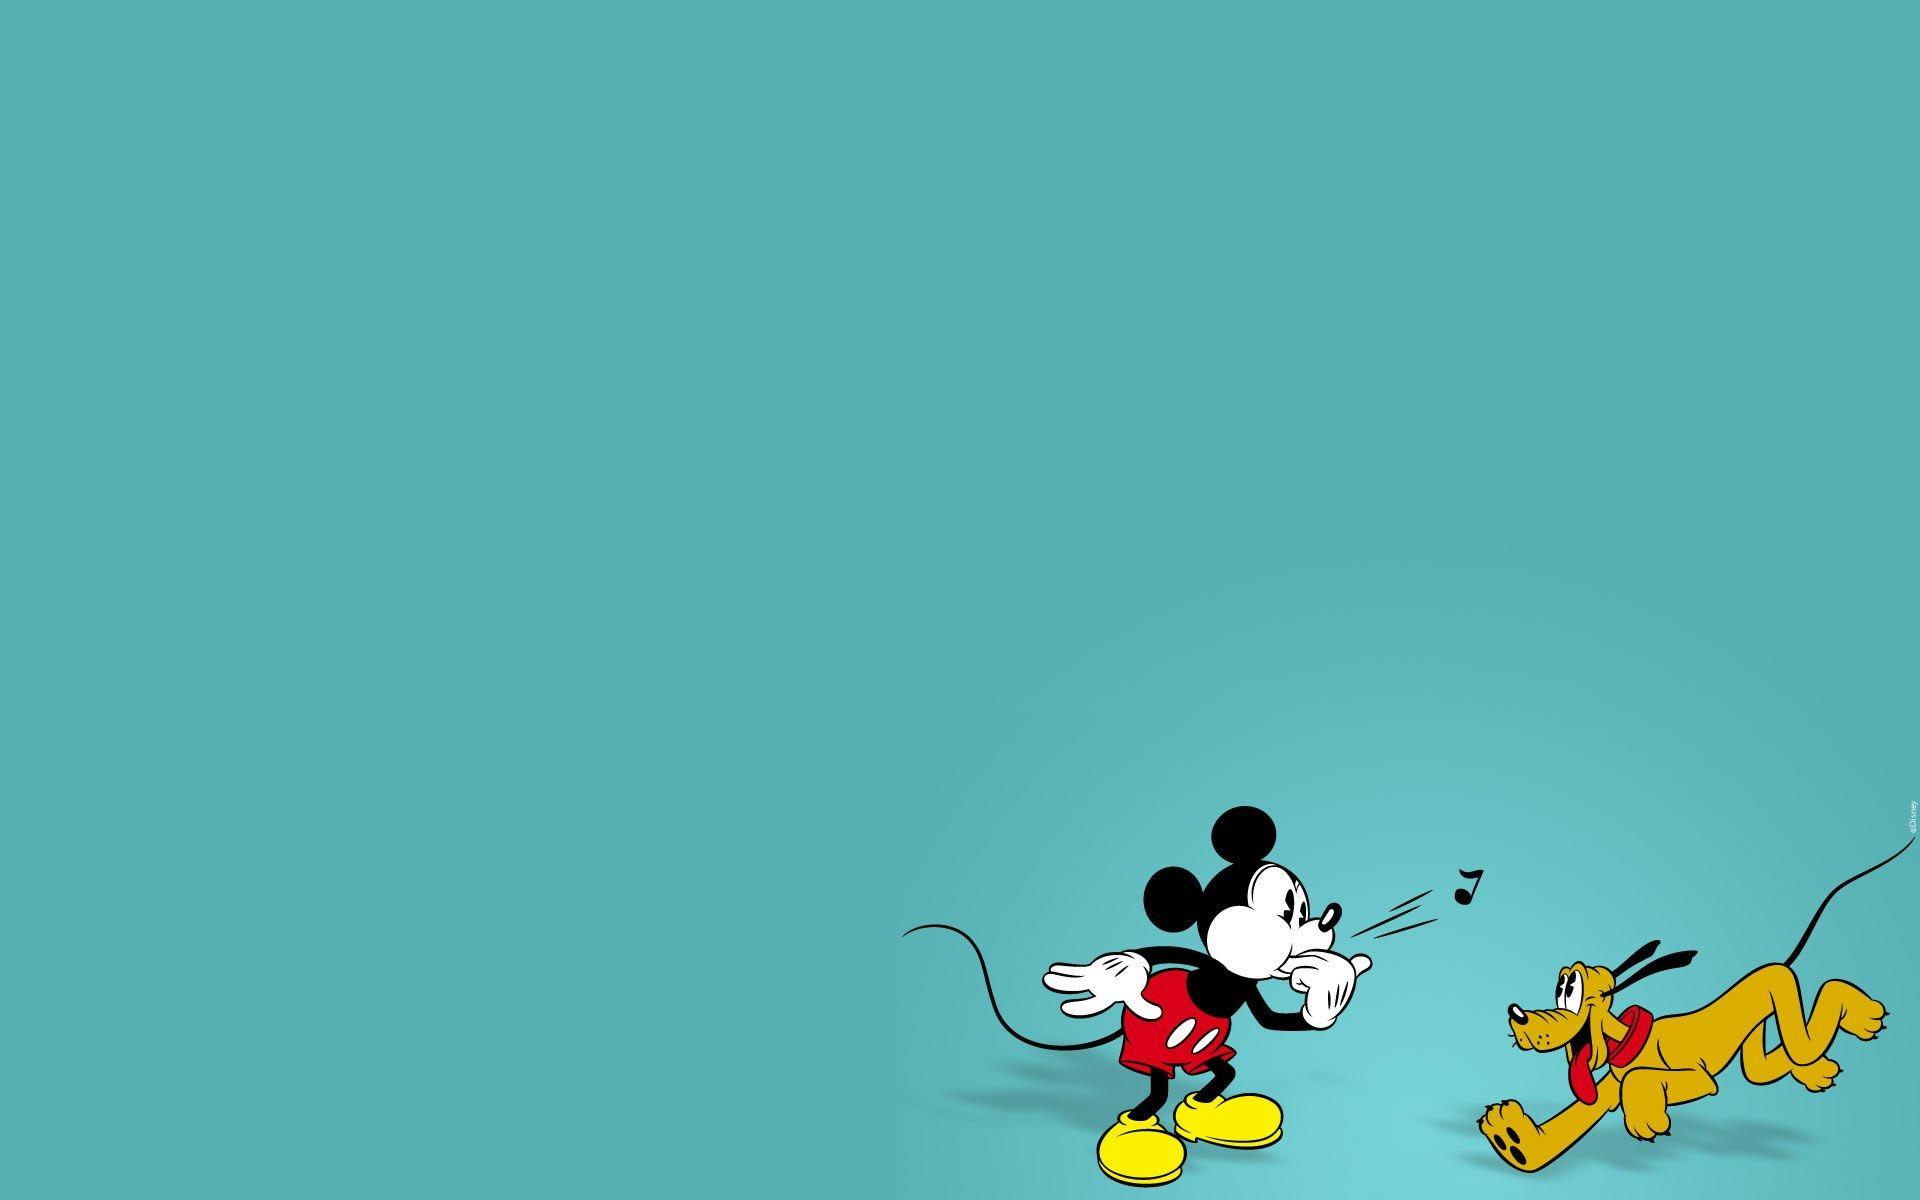 Mickey-Mouse-Funny-Wallpaper | wallpaper.wiki